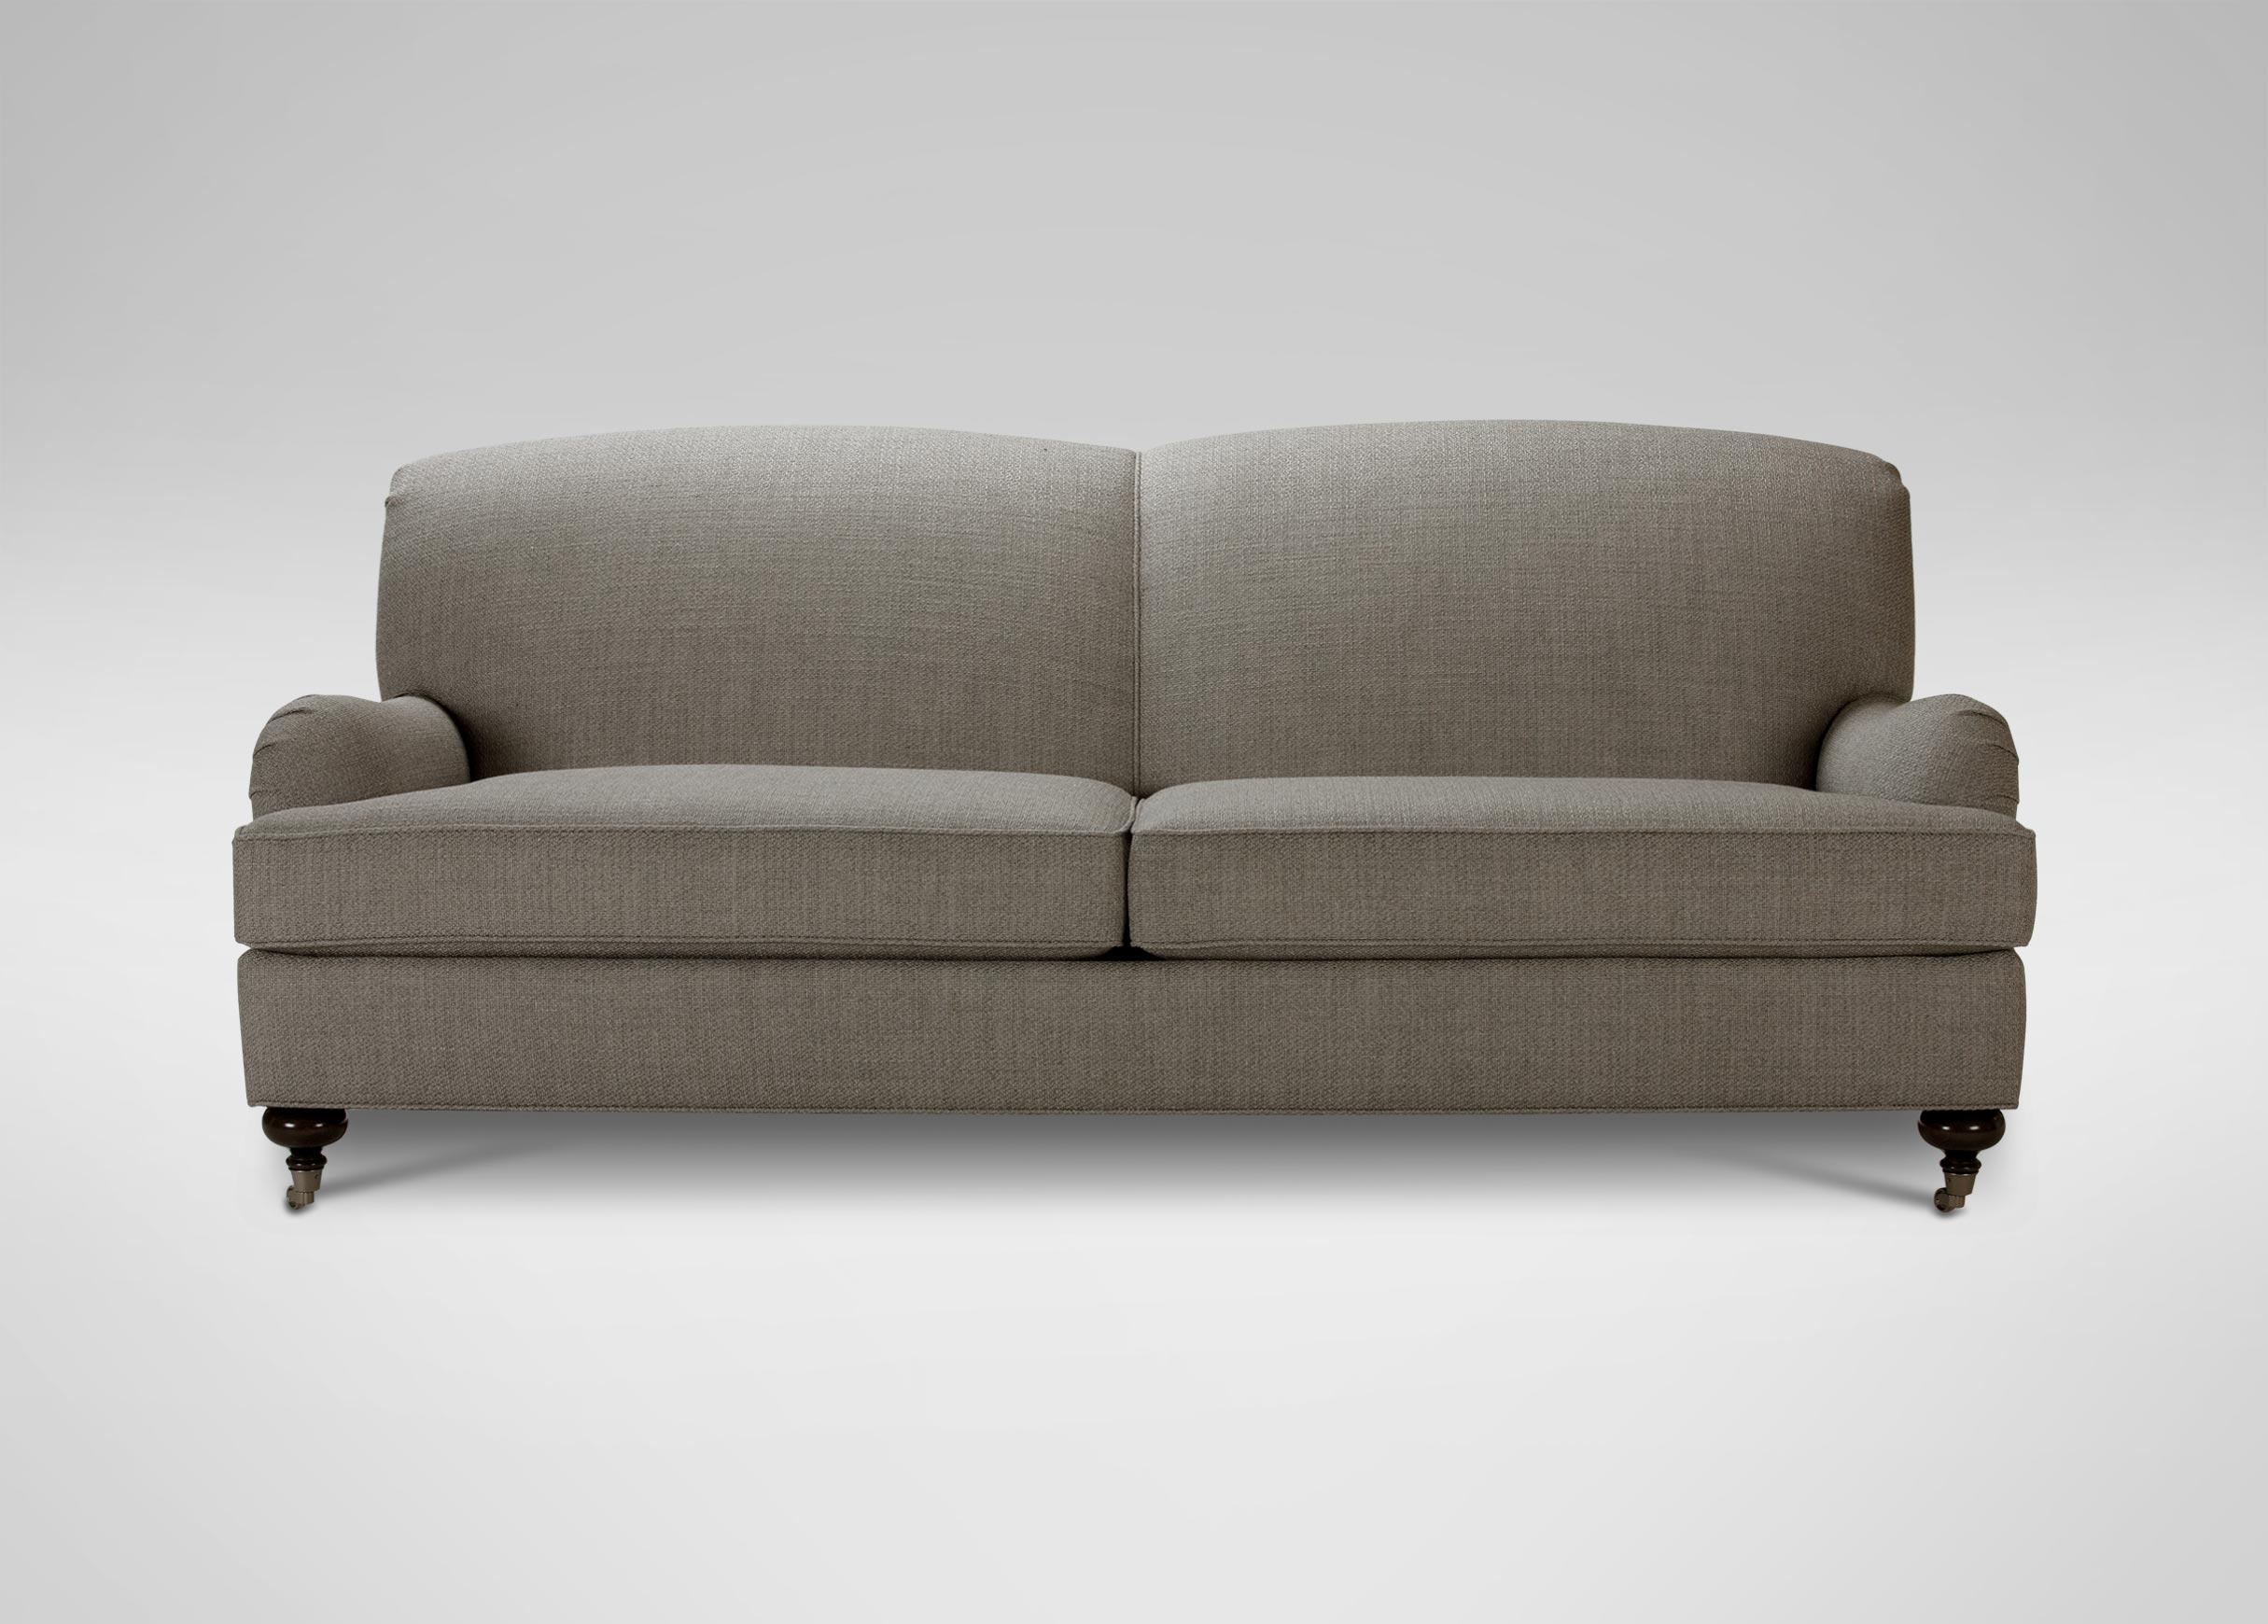 Oxford Sofa | Sofas & Loveseats In Ethan Allen Sofas And Chairs (Image 16 of 20)